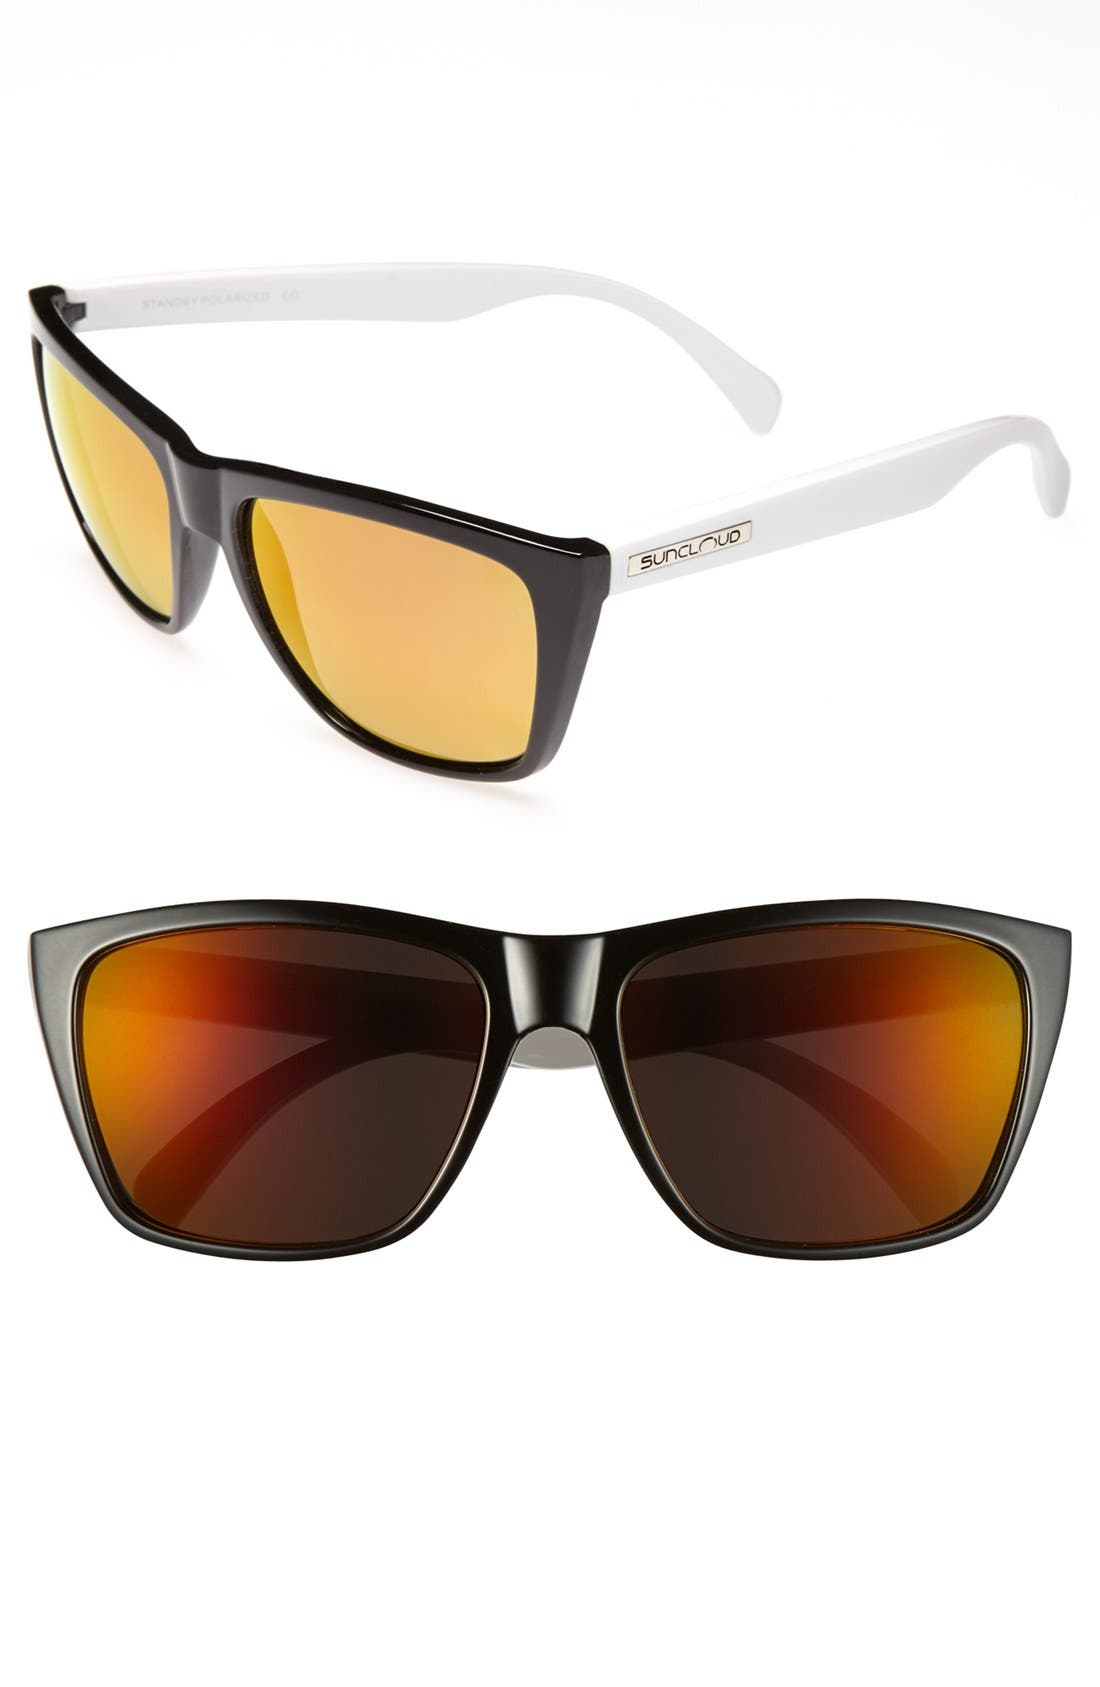 Main Image - Suncloud 'Standby' Polarized Sunglasses